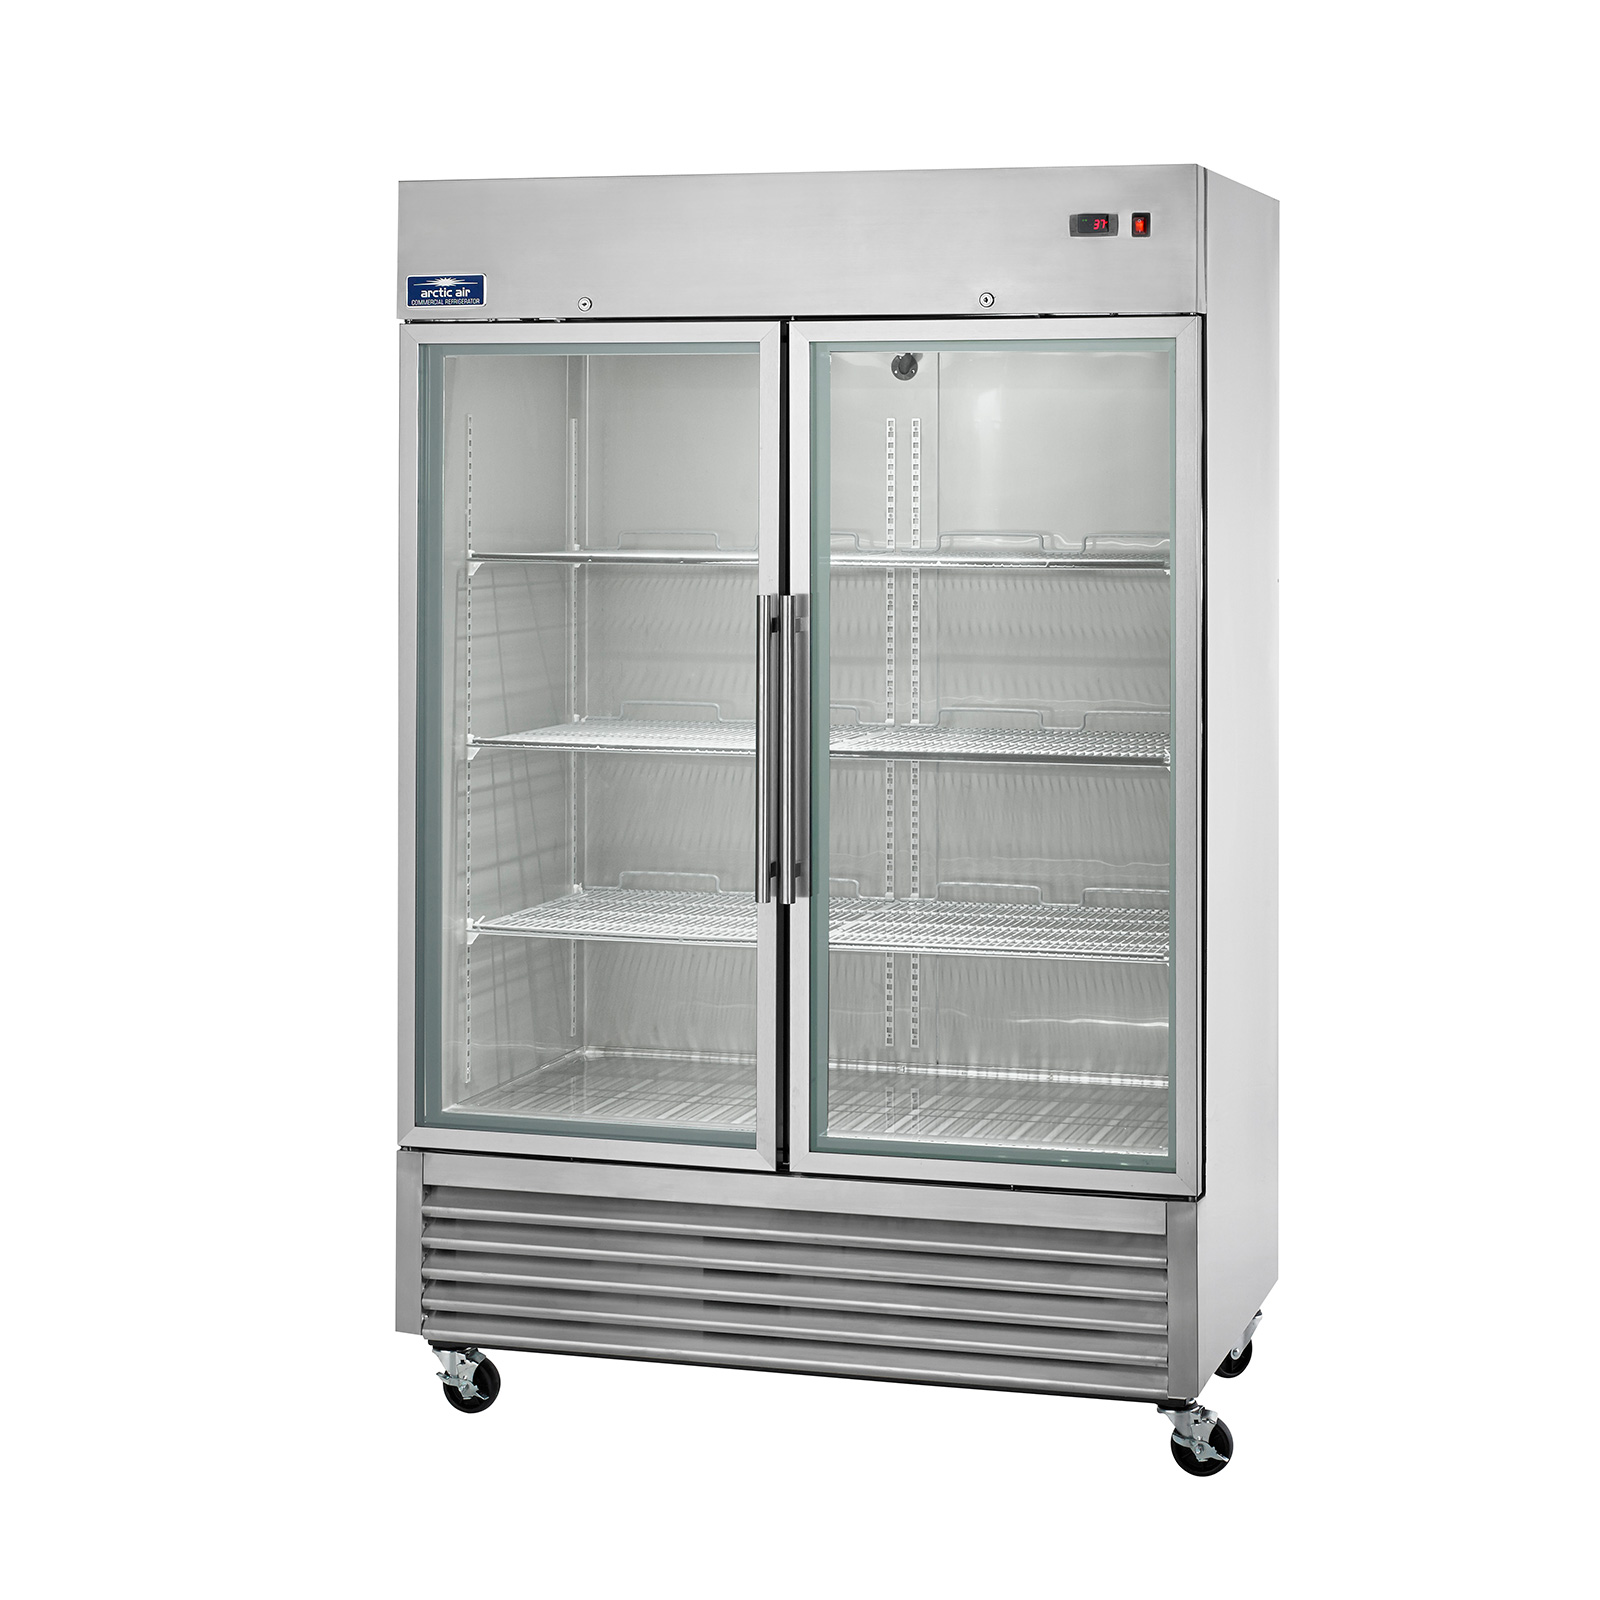 Arctic Air AGR49 refrigerator, reach-in